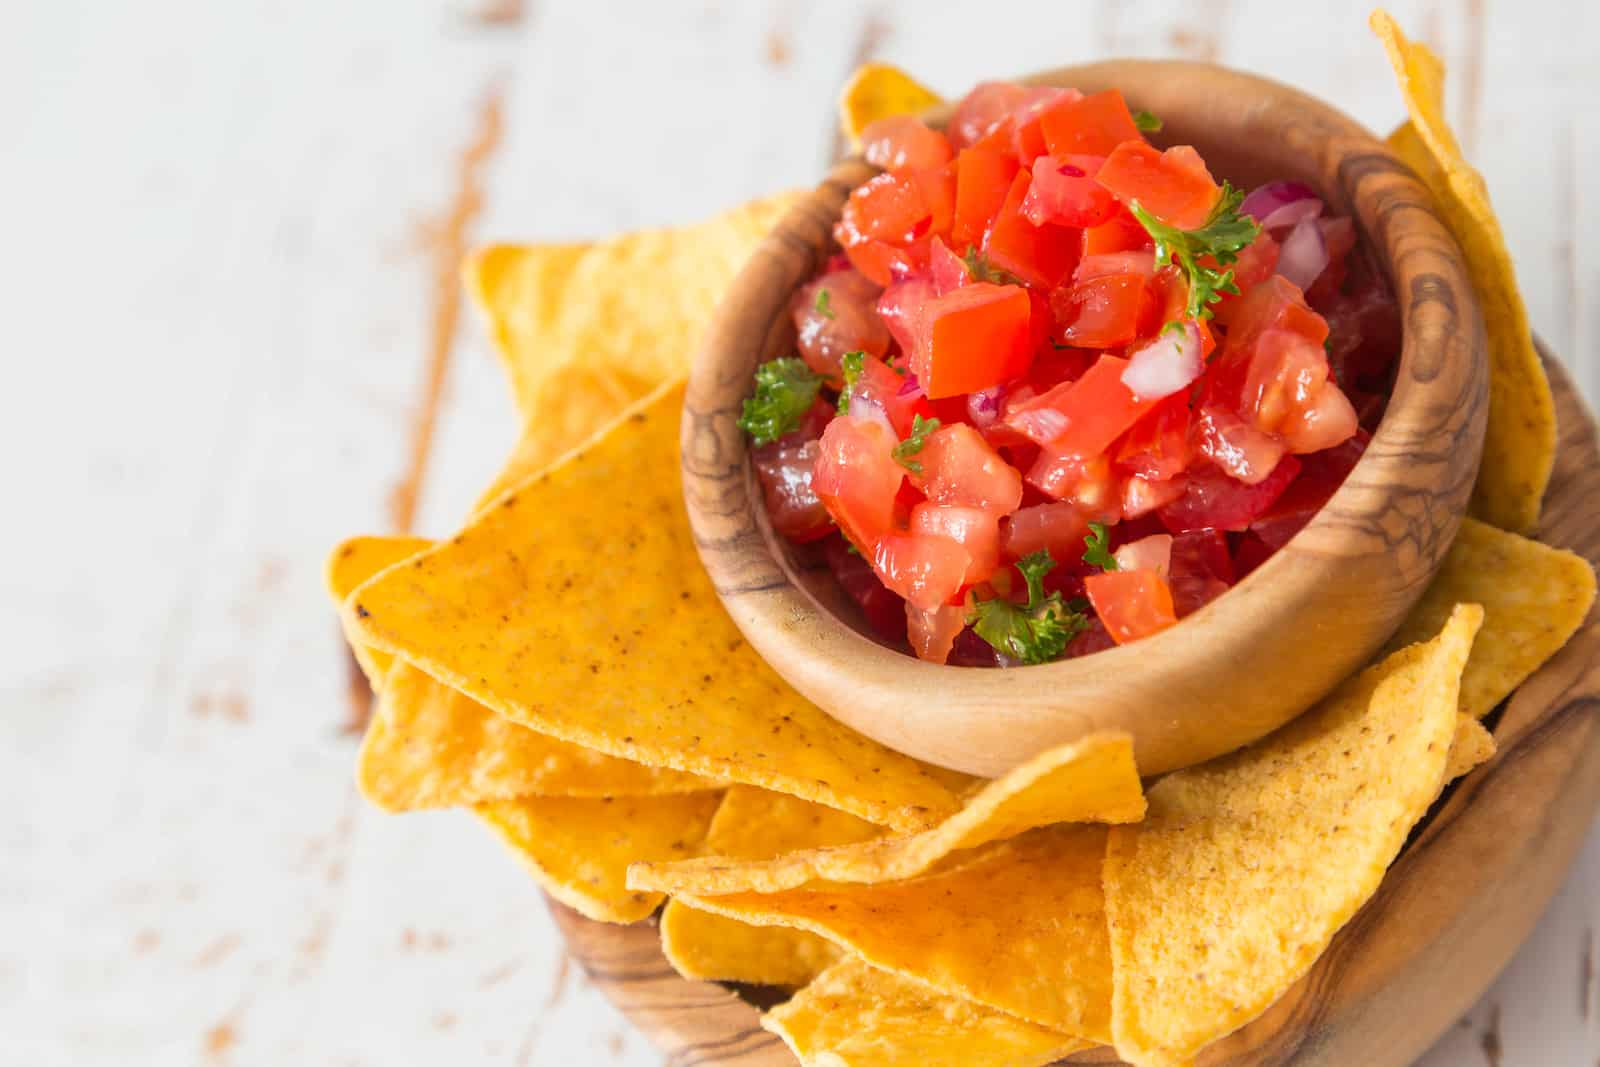 Does Salsa Go Bad?